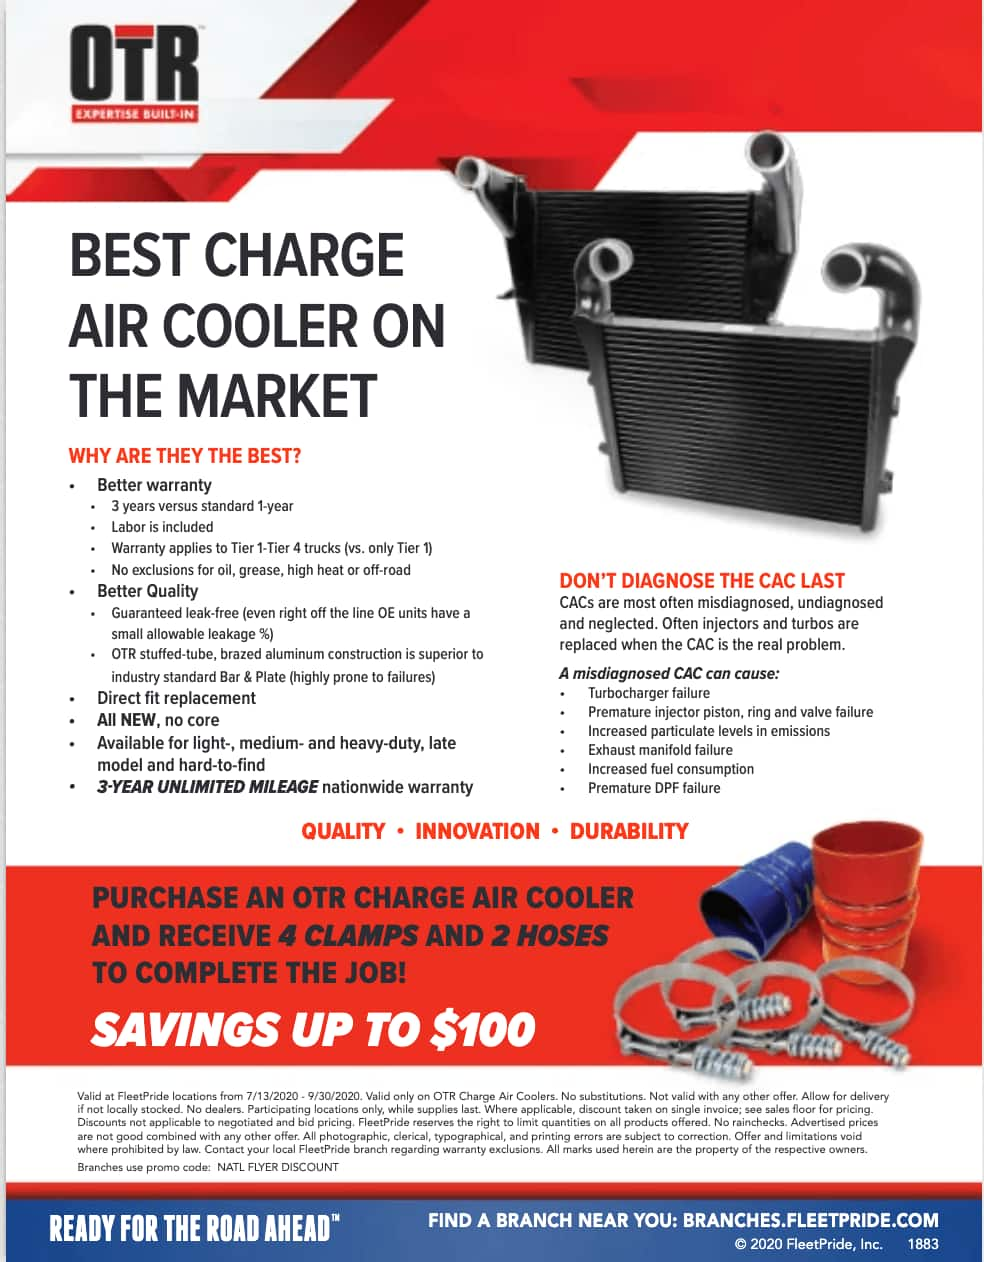 OTR change air cooler